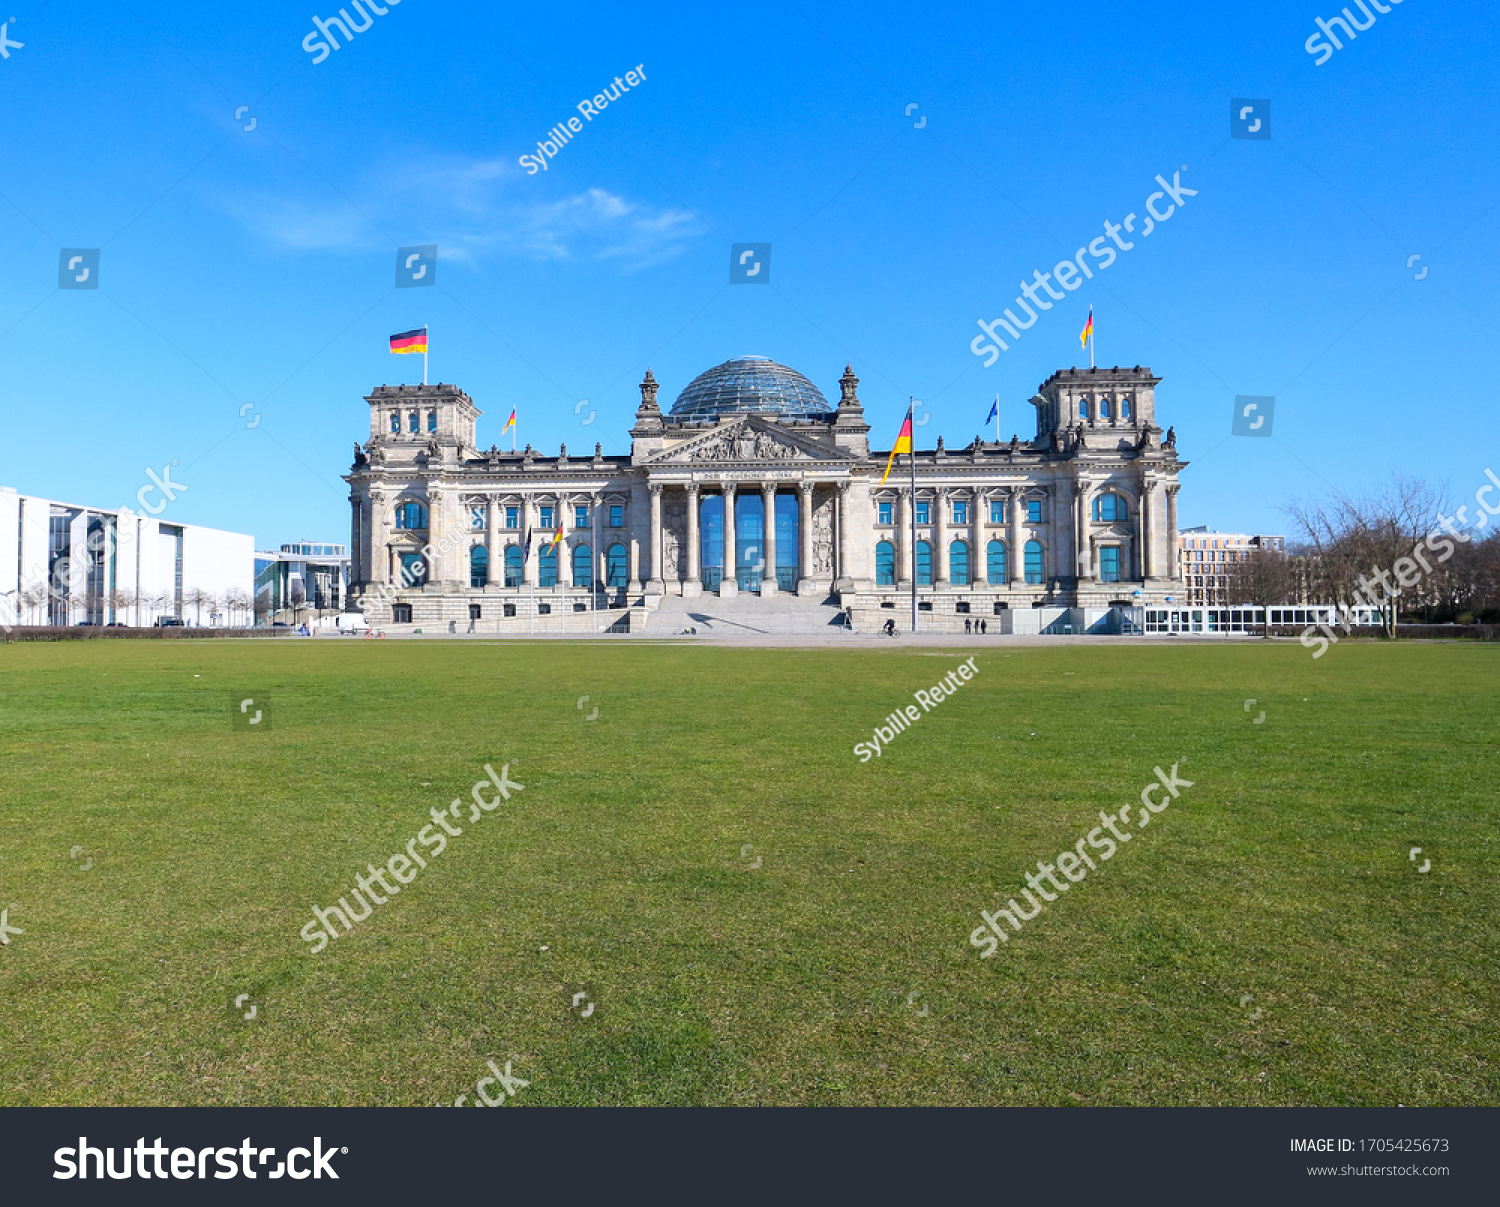 stock-photo-berlin-germany-march-reichst